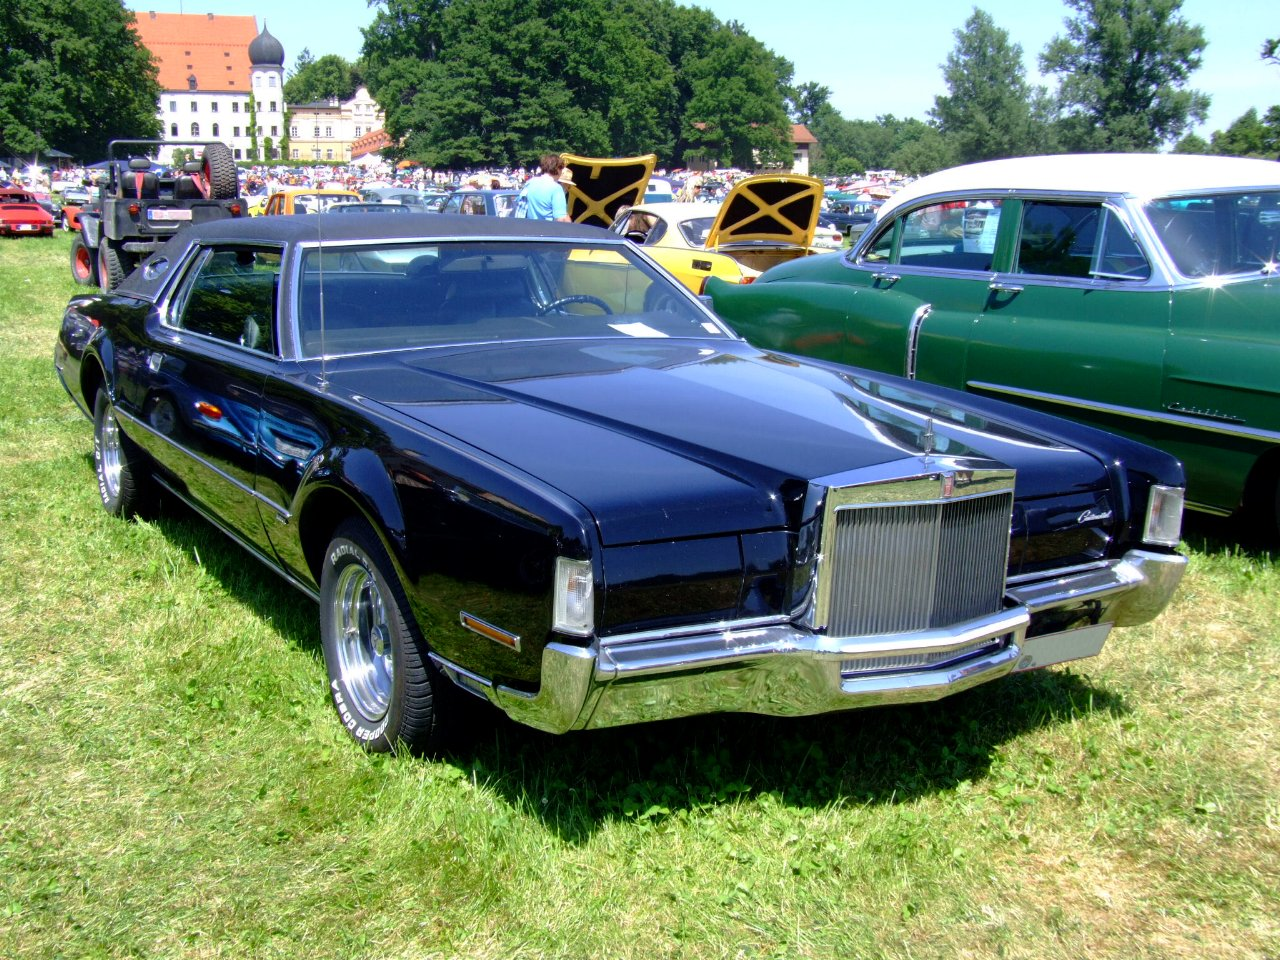 File:Lincoln Continental MK4 1972.JPG - Wikipedia